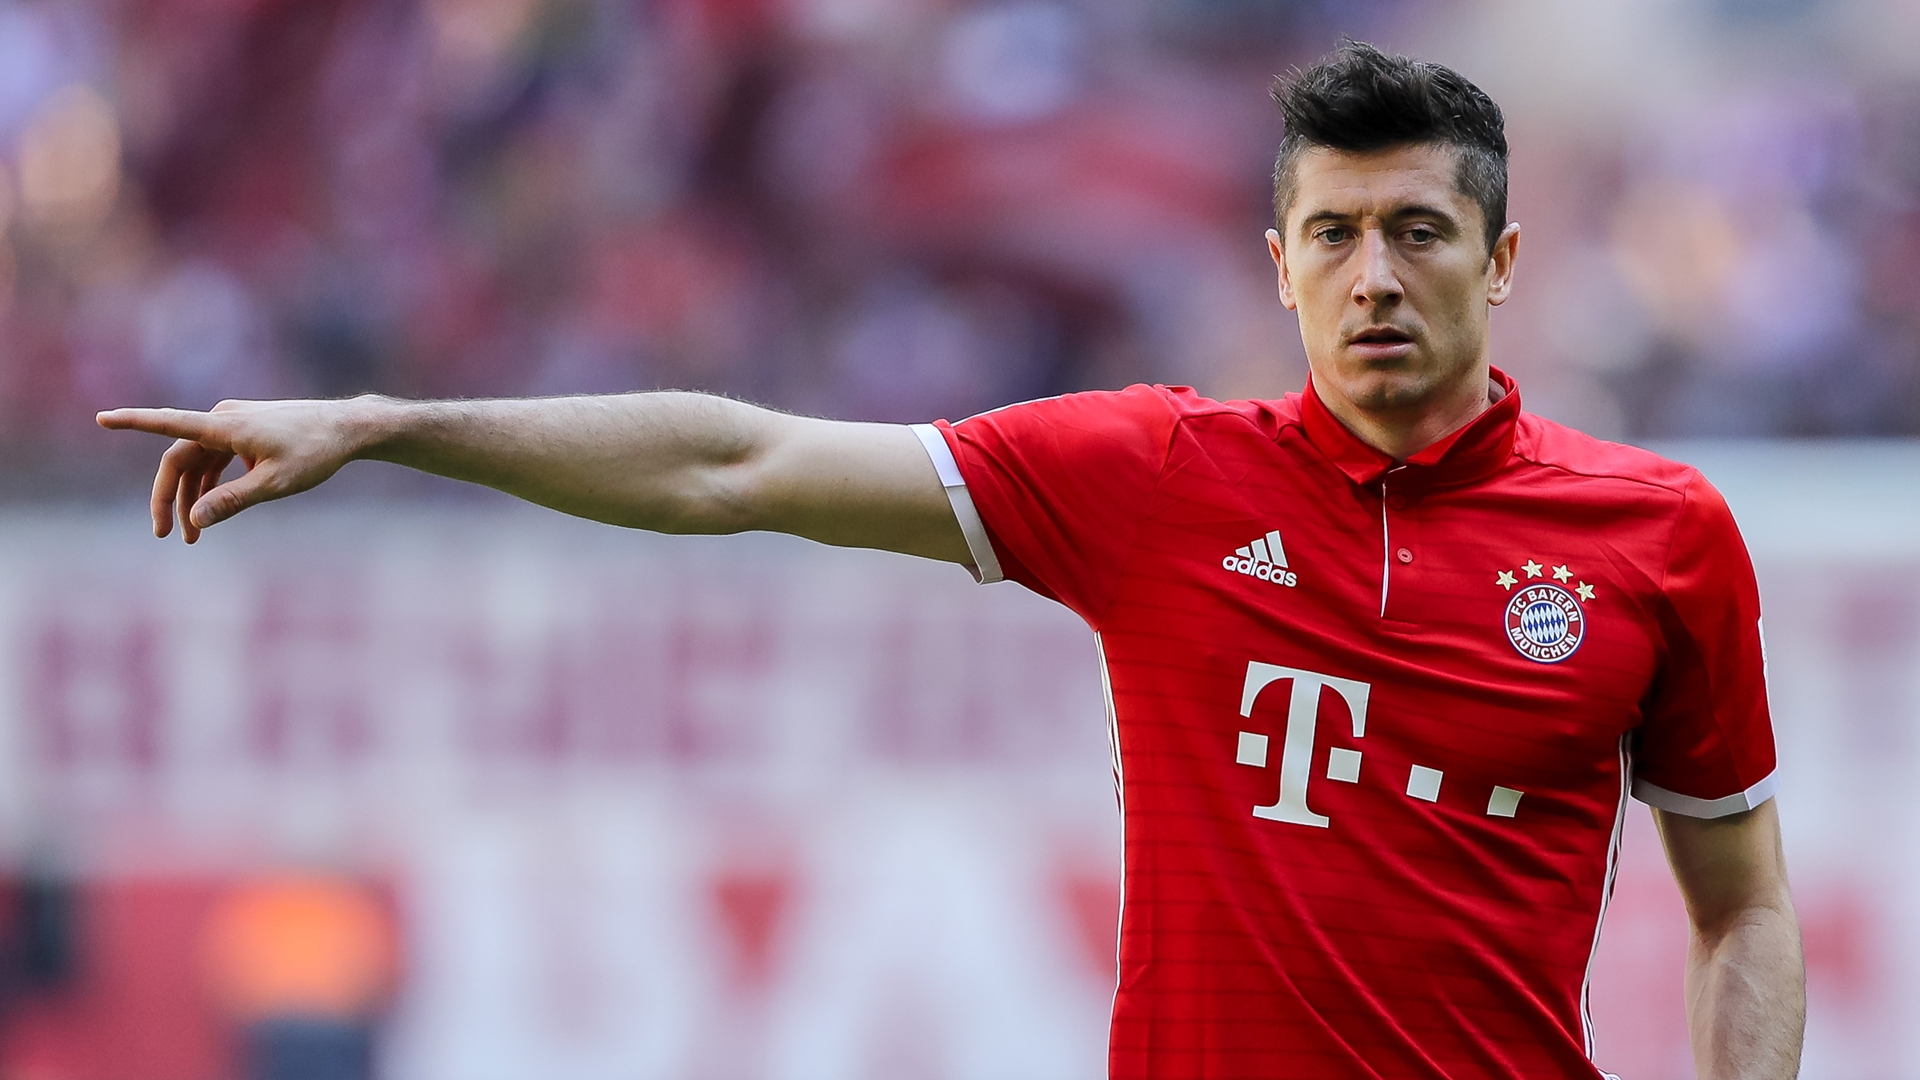 Lewandowski: The Man to Dethrone Messi and Ronaldo as Ballon D'Or Winner?